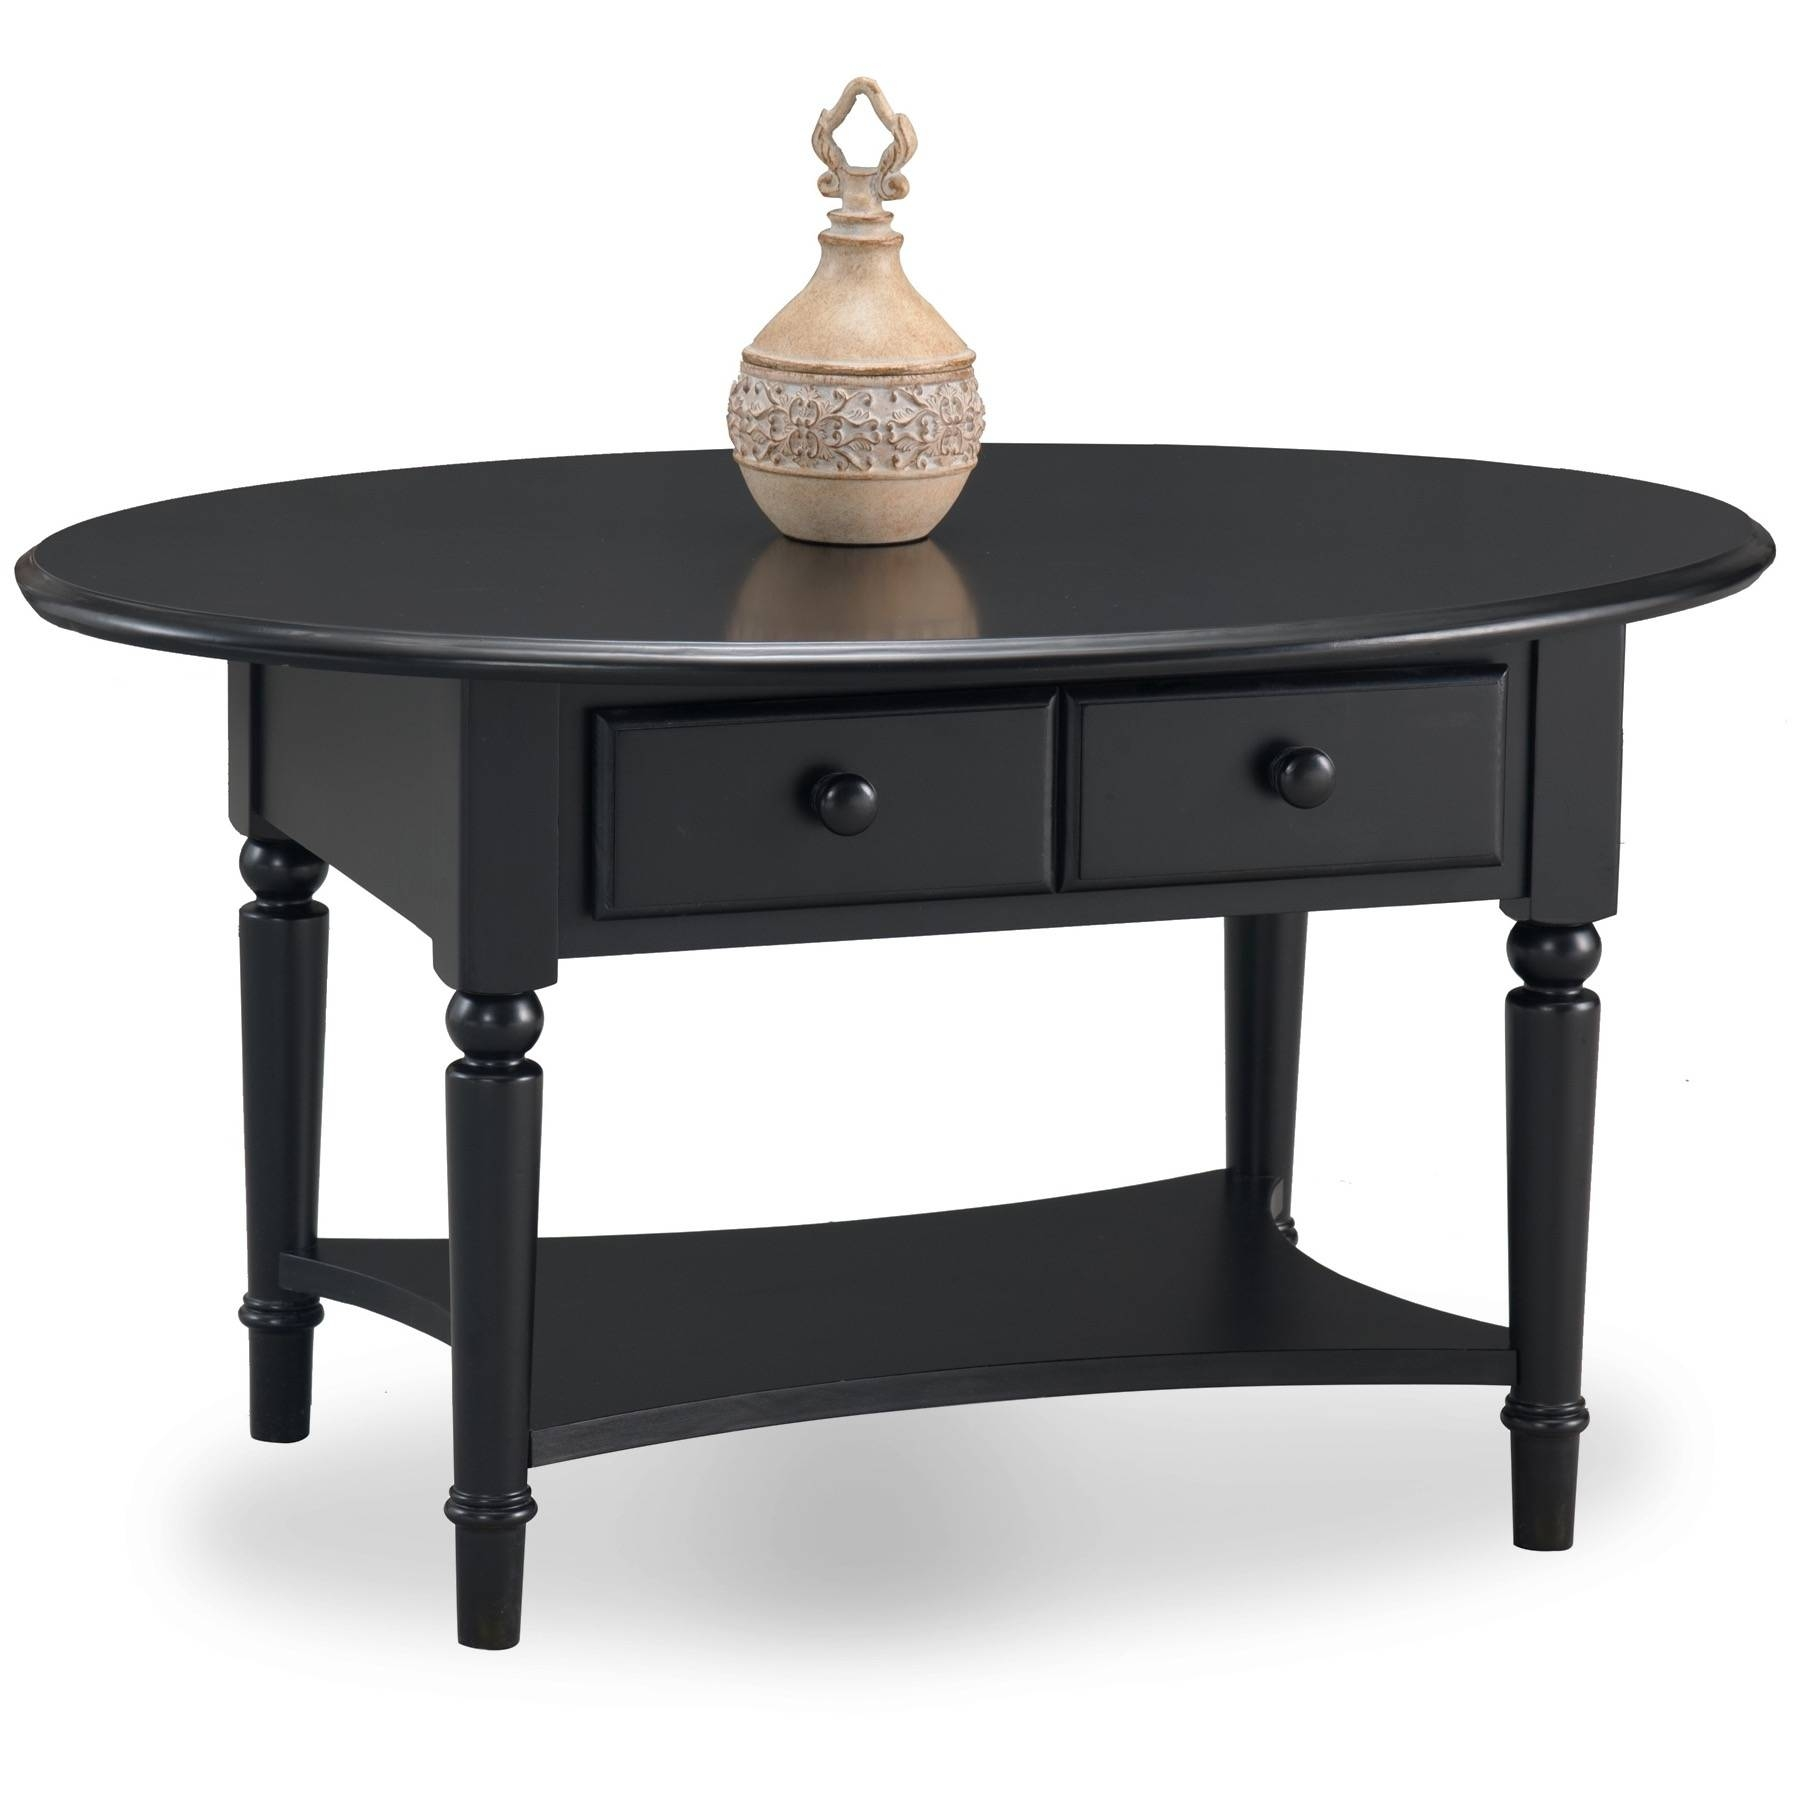 Chest Coffee Table Small Dark Wood Lucnex Black Oval And Full Size within Black Oval Coffee Table (Image 3 of 30)